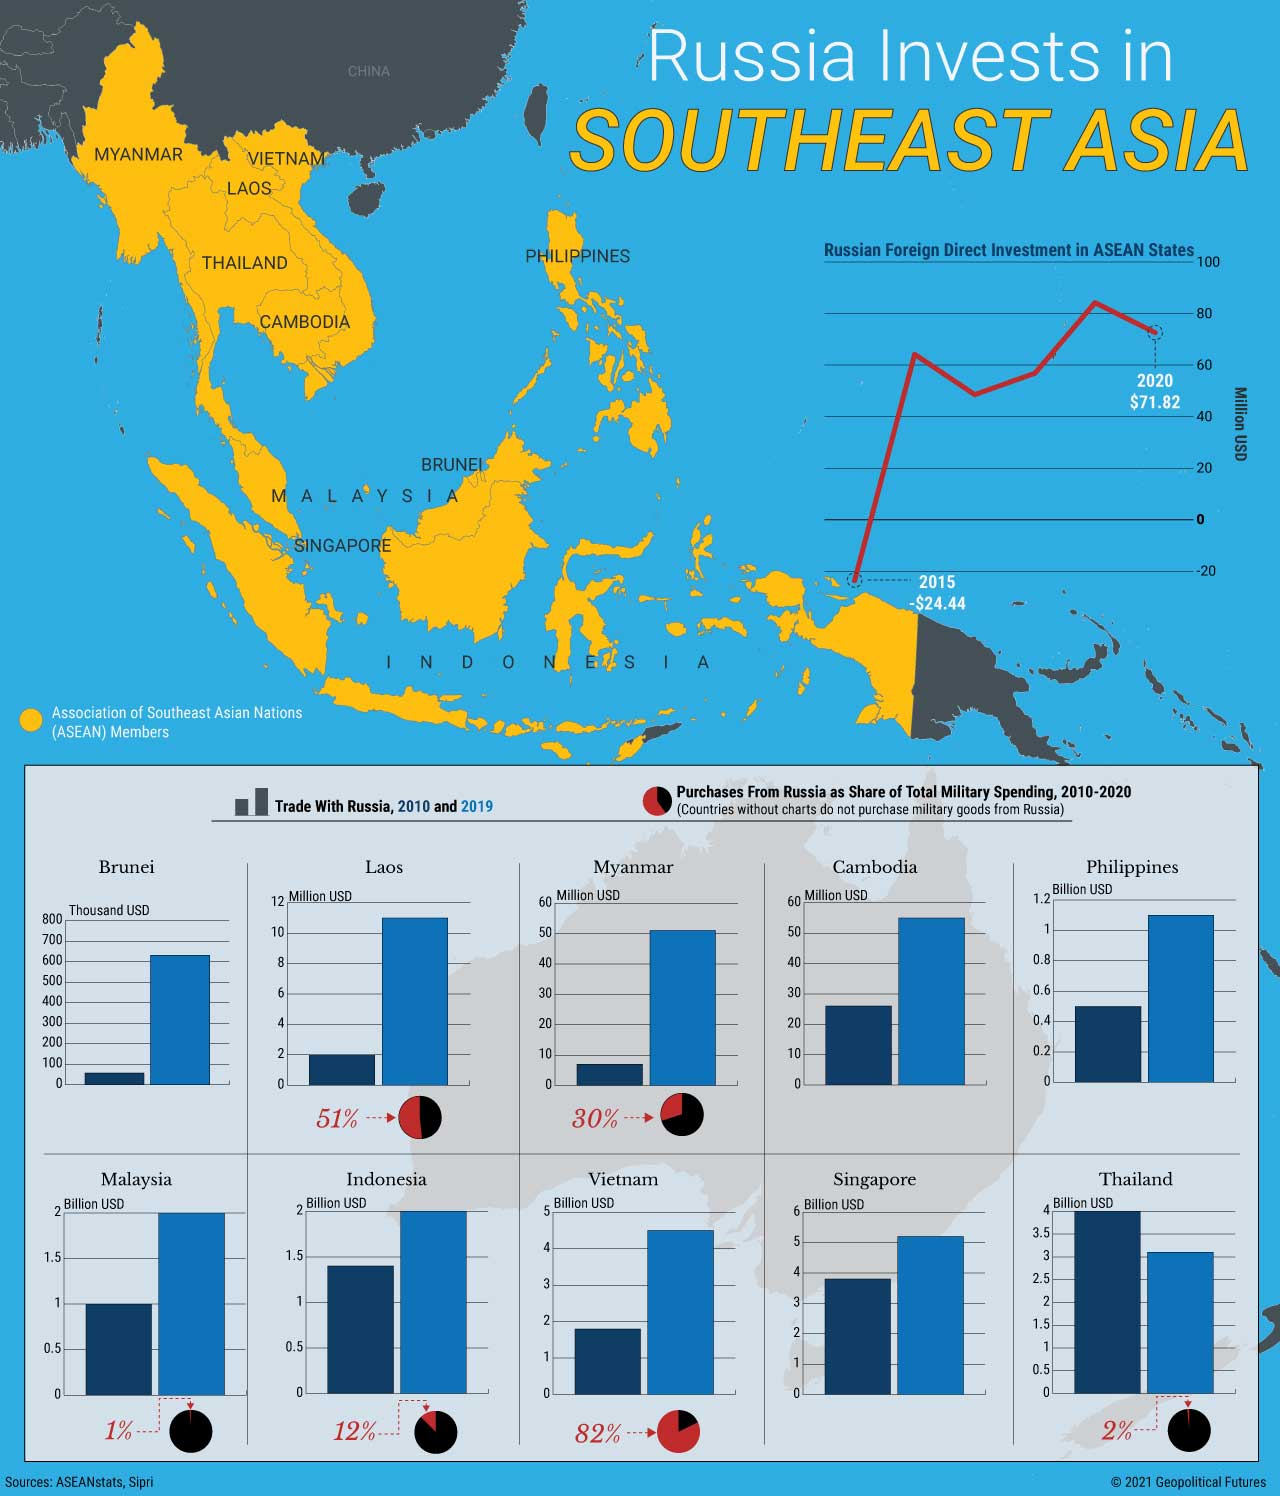 Russia Invests in Southeast Asia